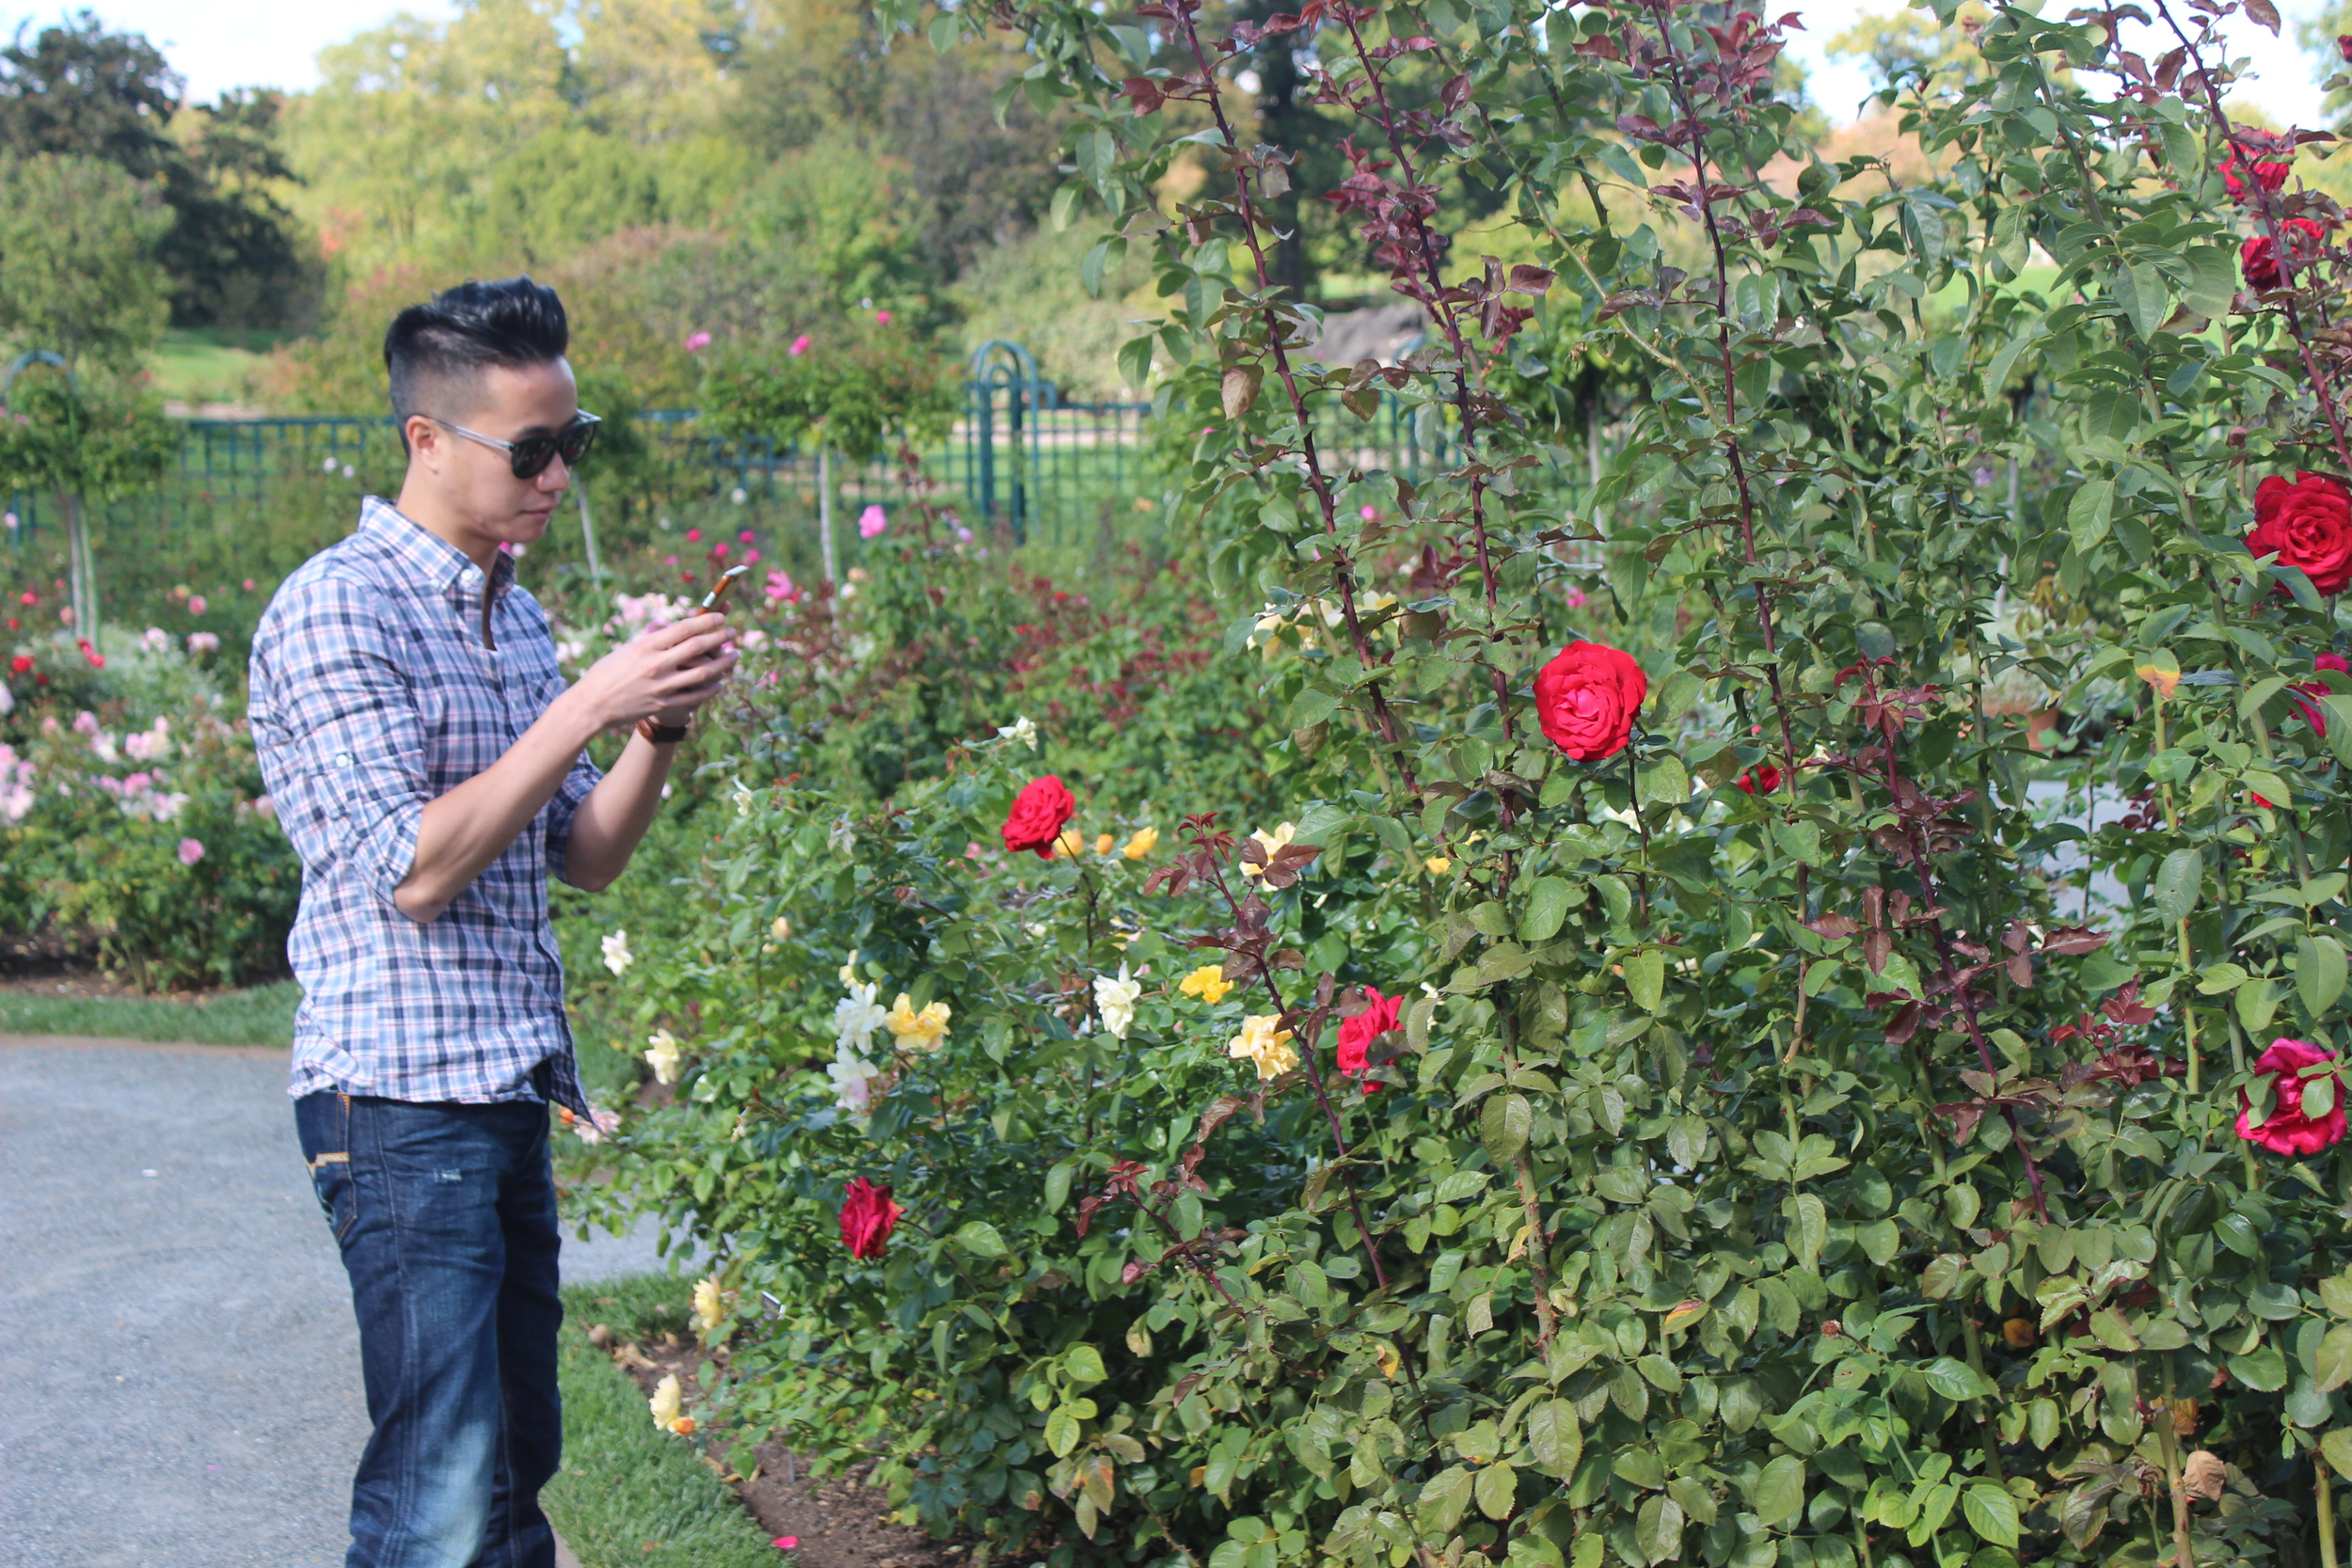 Warren checking out the roses!